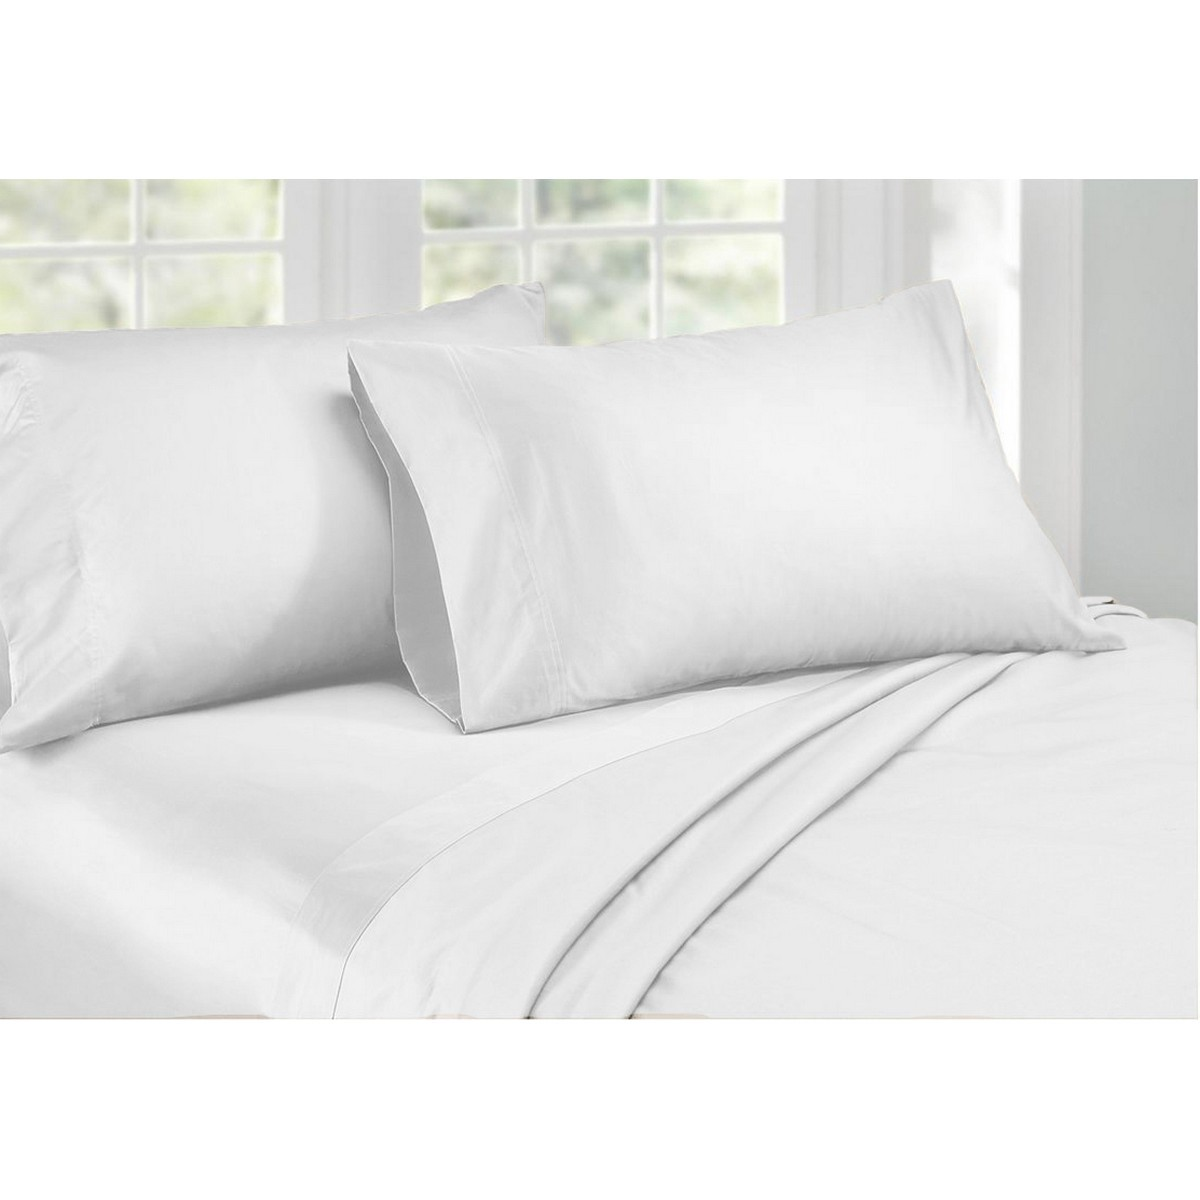 Ardor 1000TC Cotton Rich Sheet Set, King, White